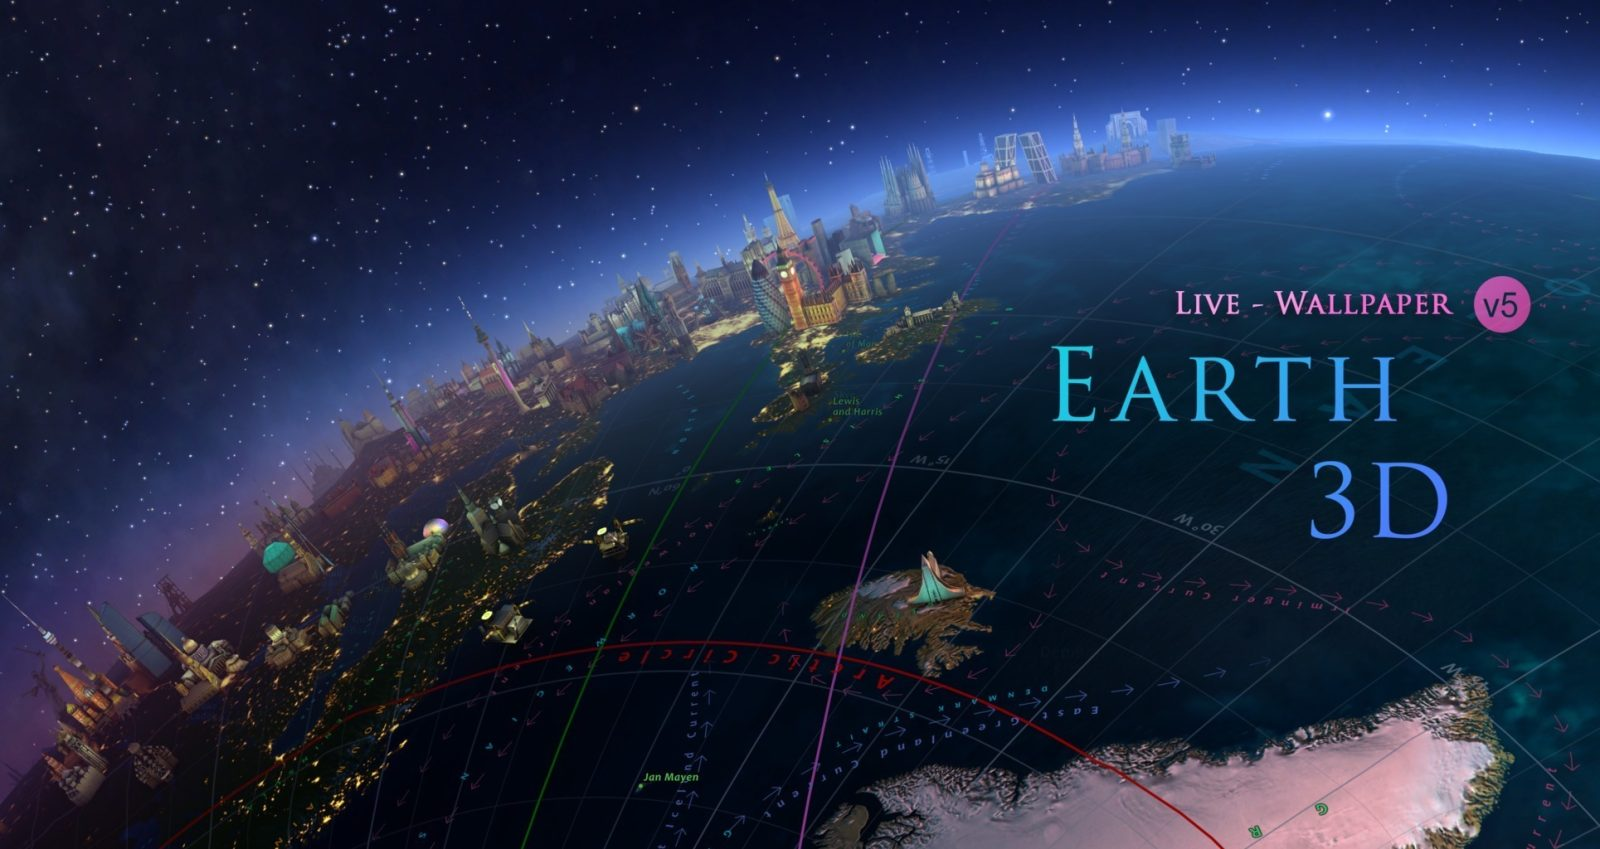 Live wallpaper app Earth 3D for Mac has now dropped down to just $1 (Reg. $3) - 9to5Toys